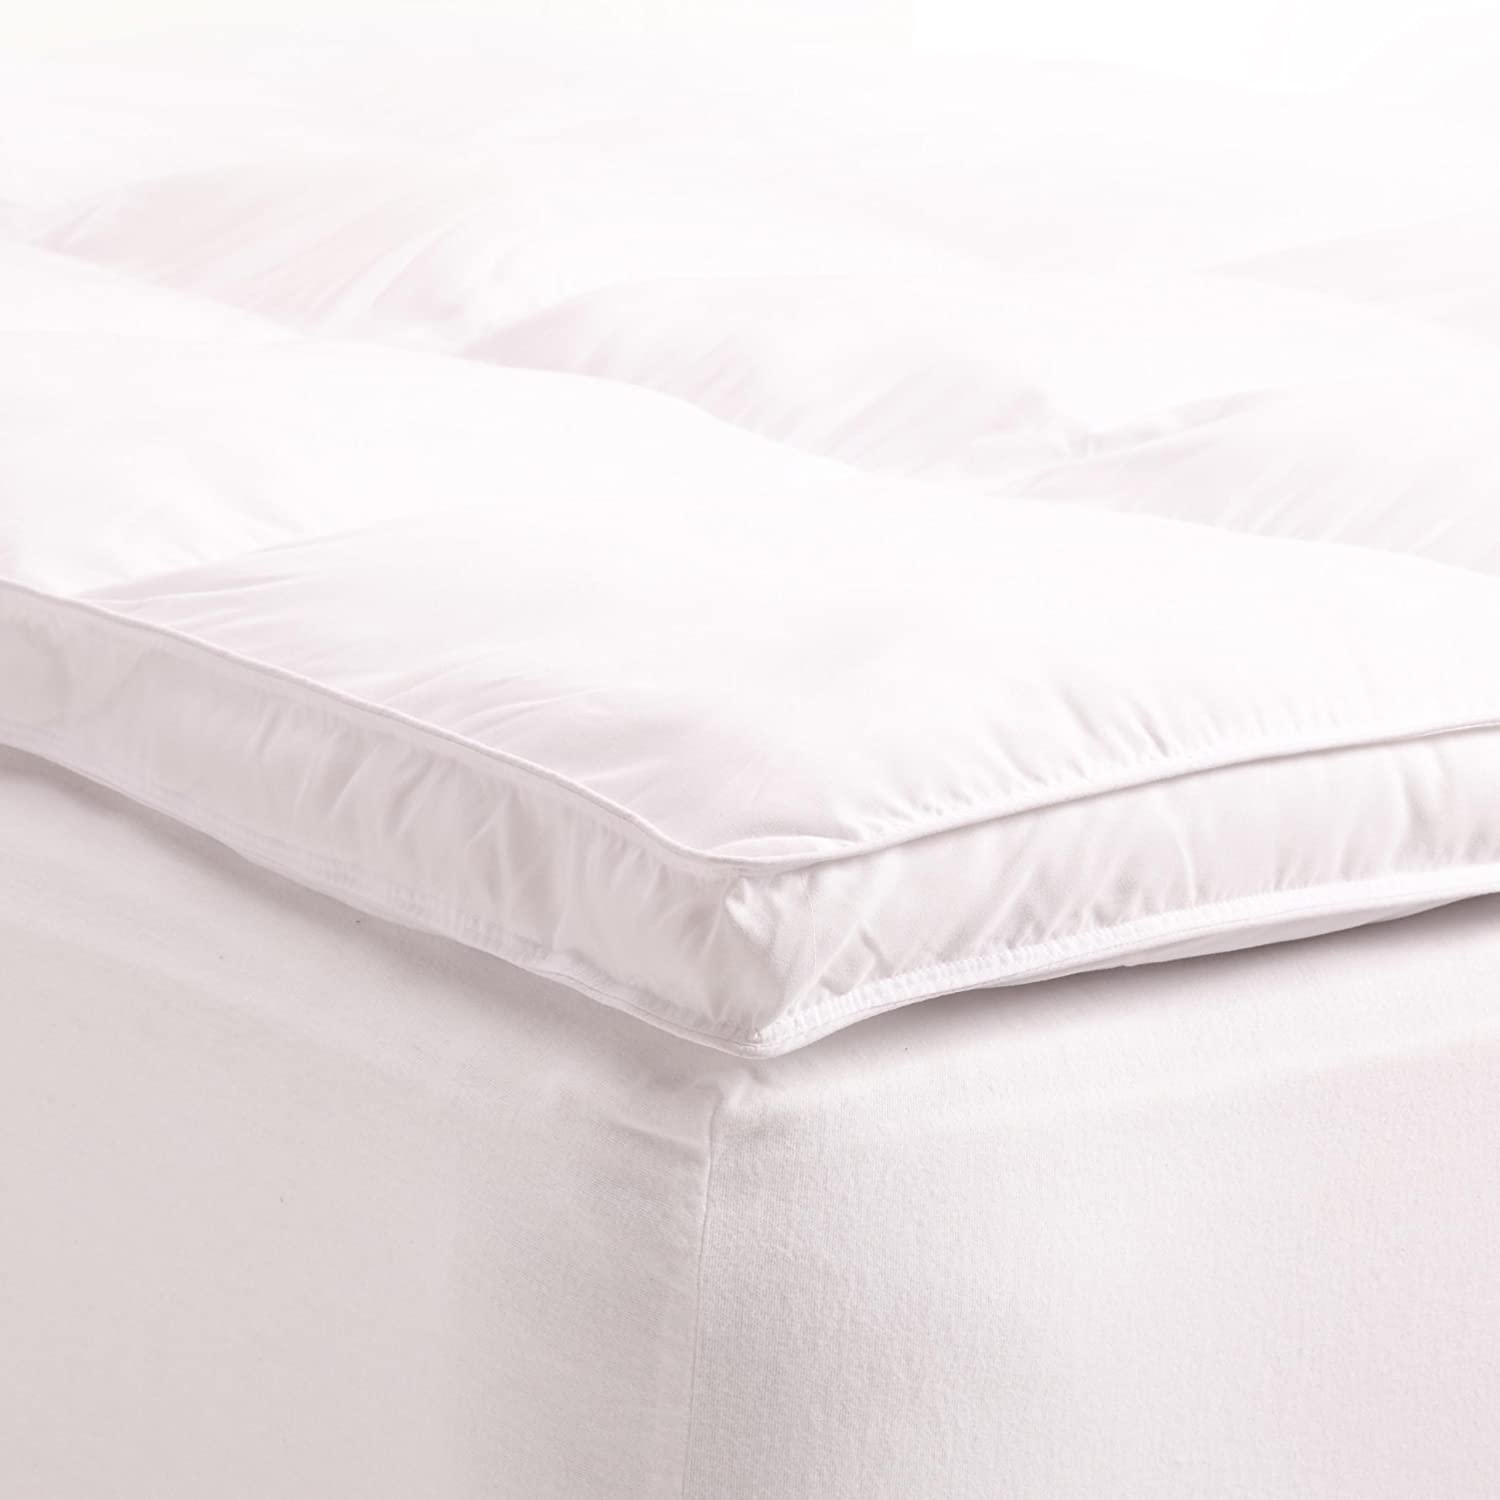 mattress inside cartulina sealy pillow telada topper top silentnightr paper miraform geltex gr binding silentnight